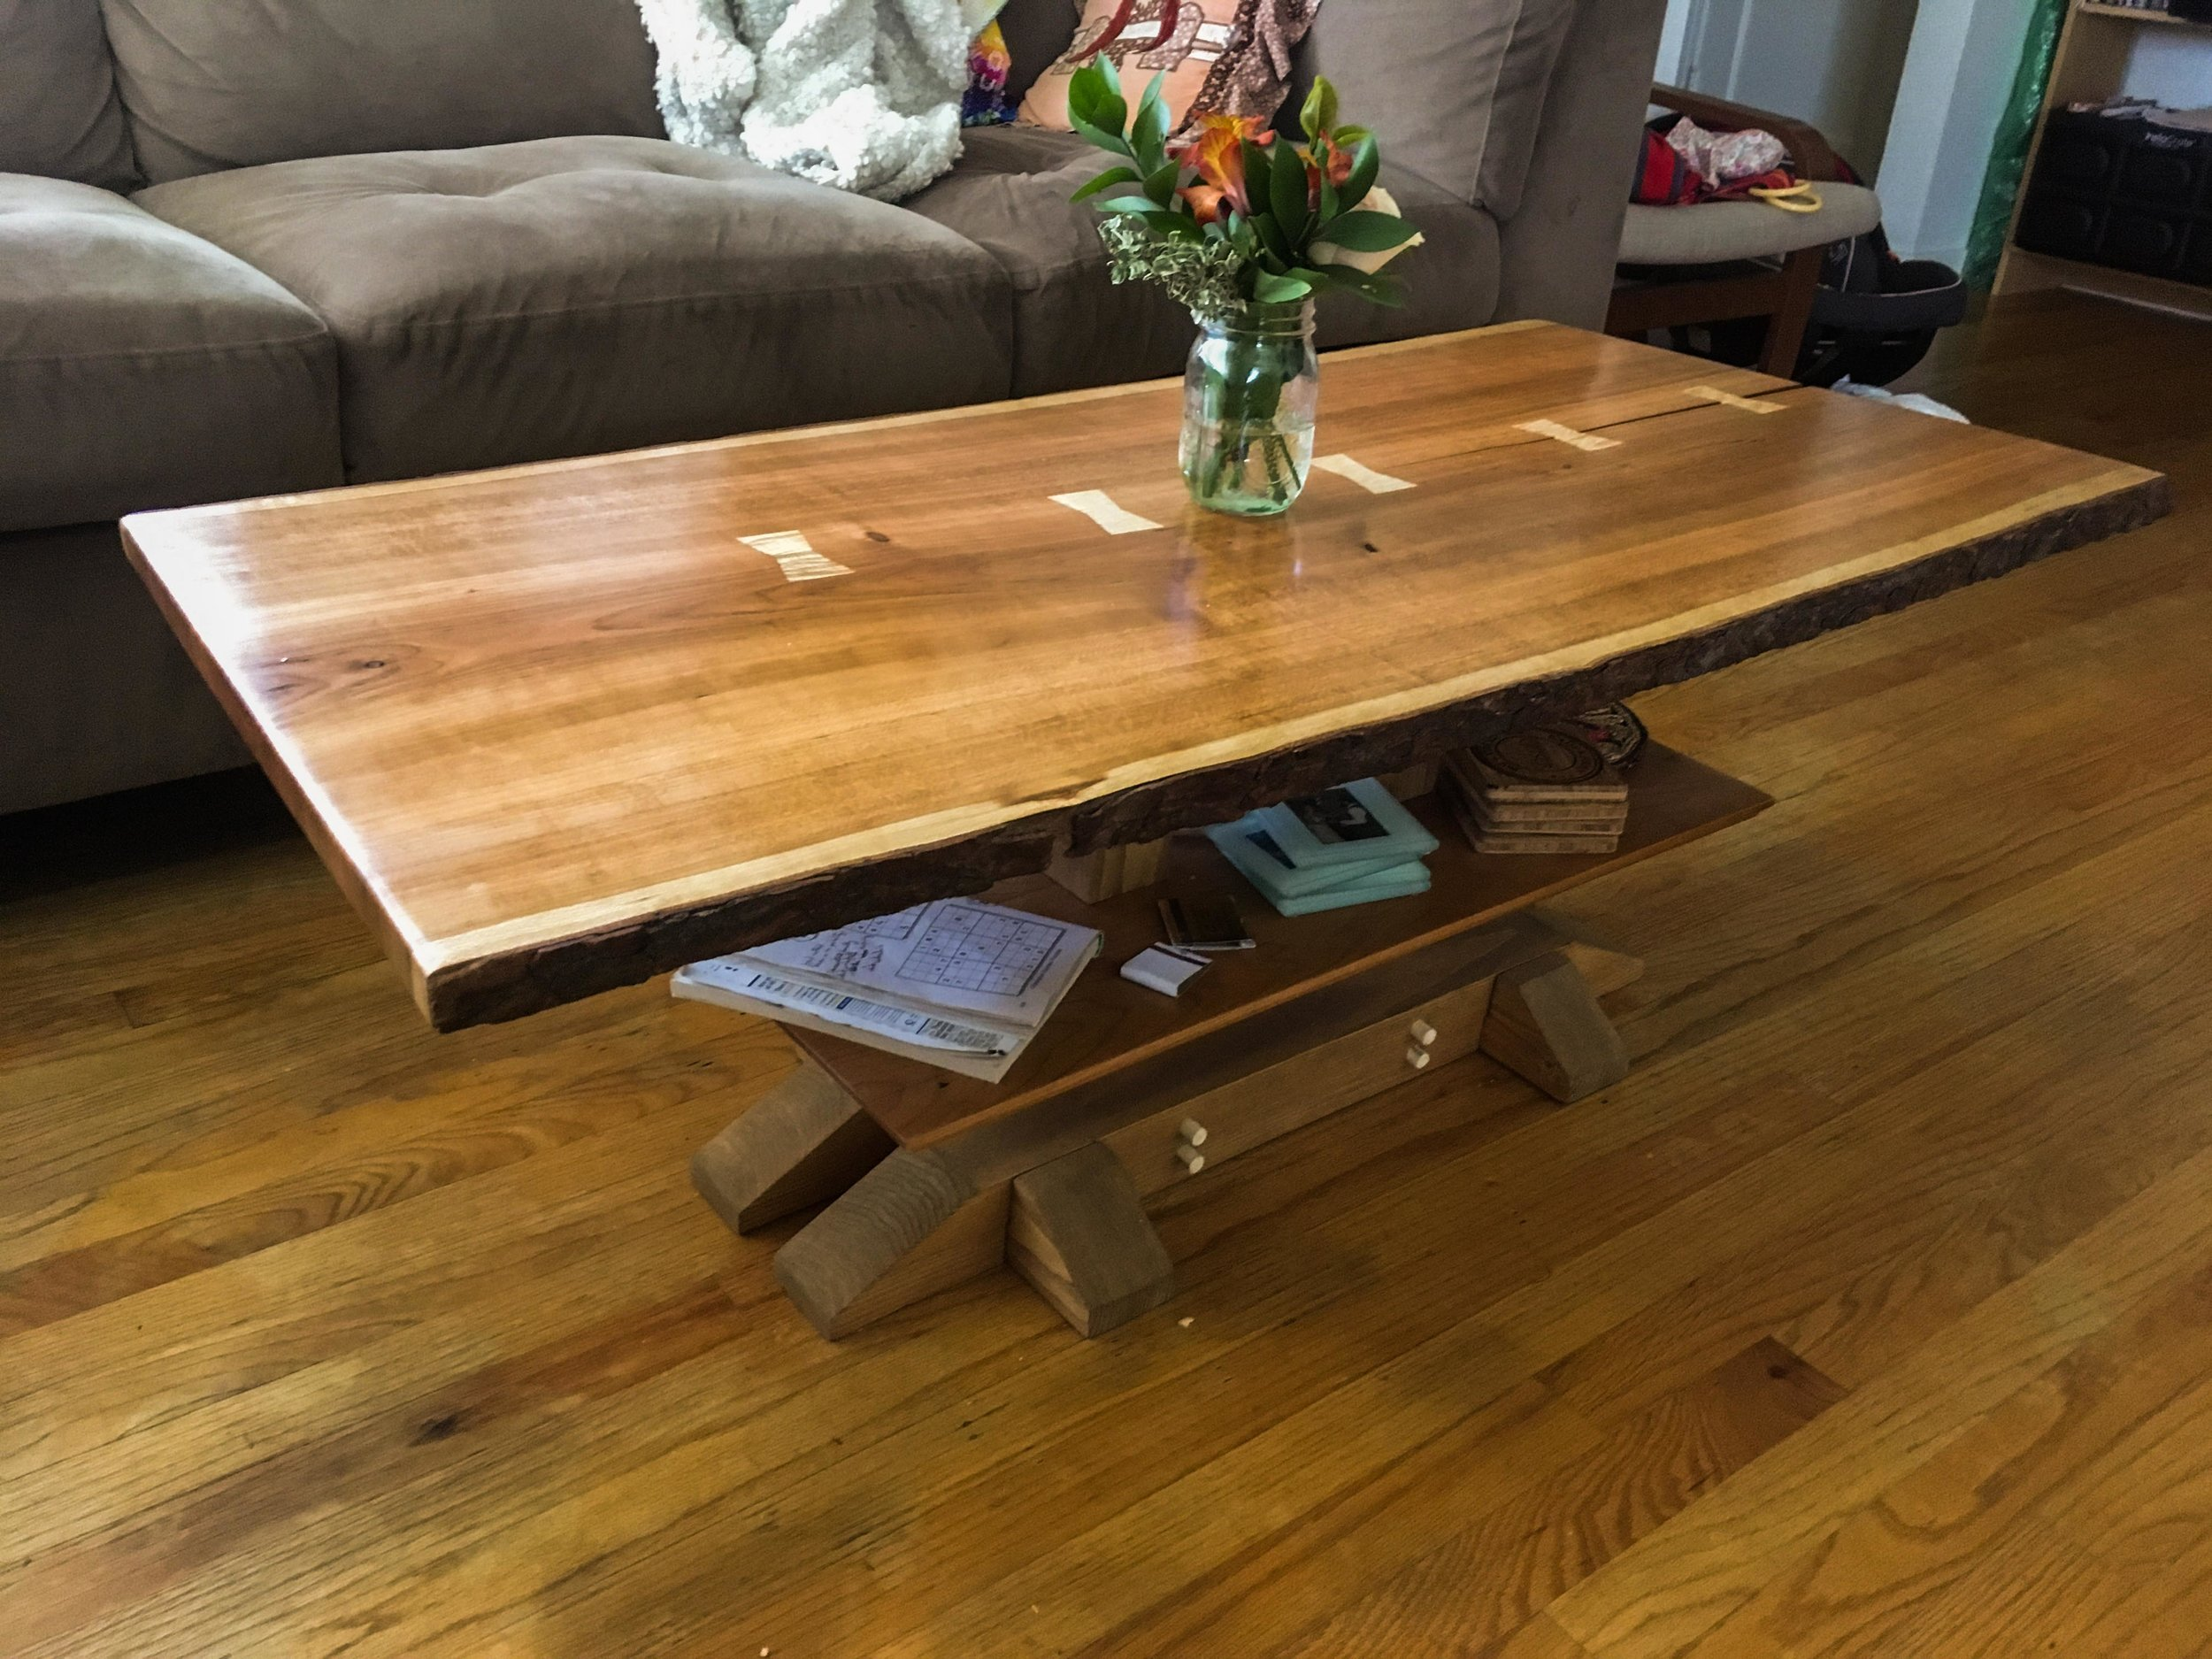 Finished Coffee Table.jpg